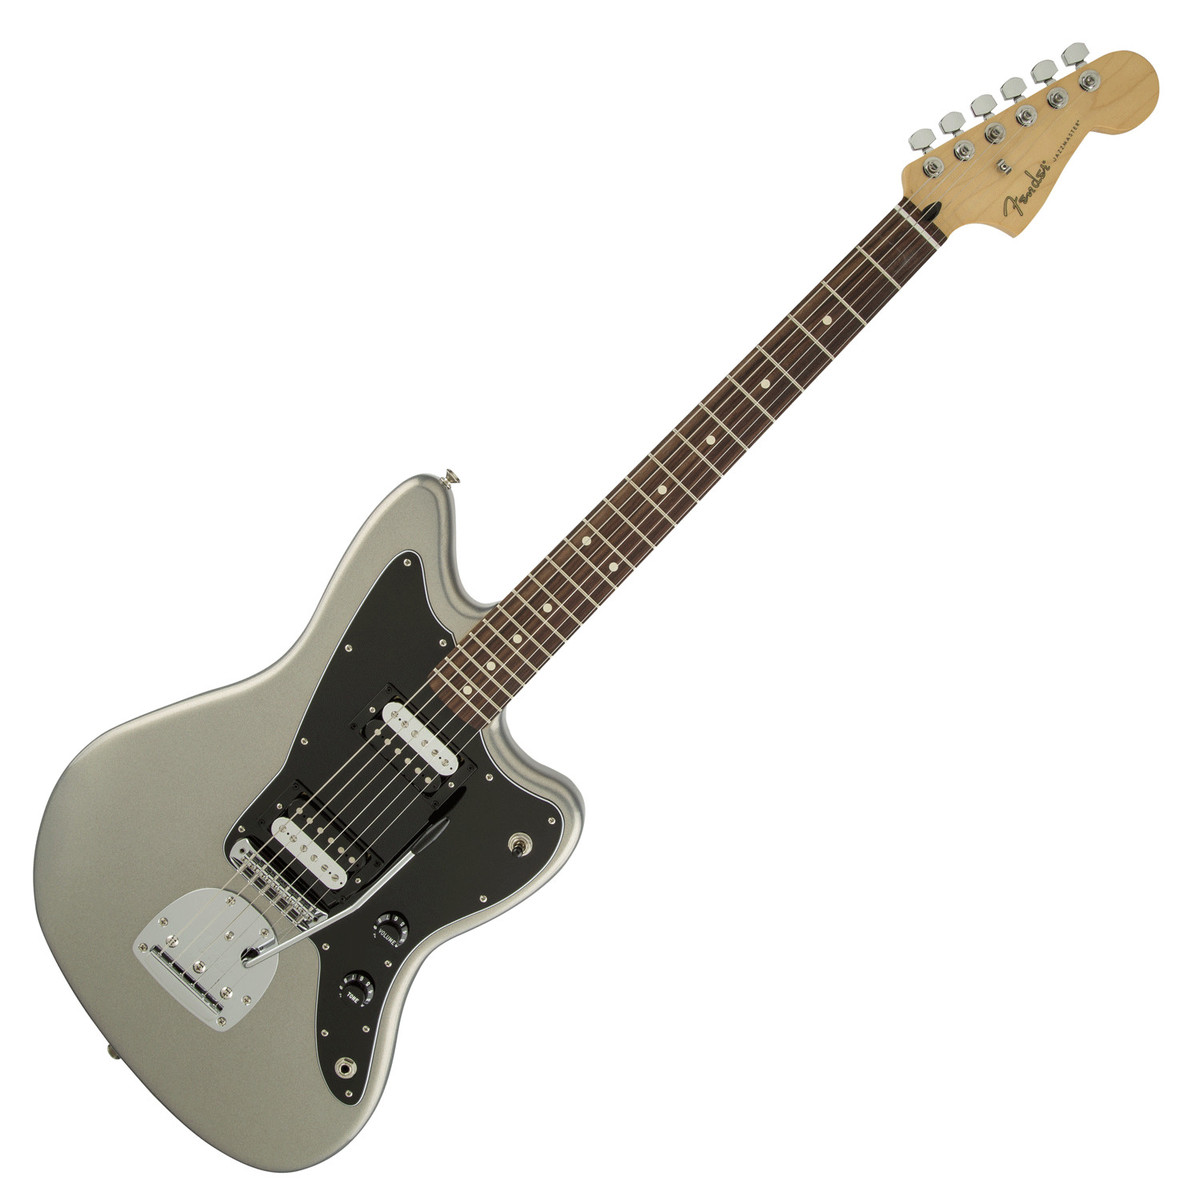 fender standard jazzmaster hh ghost silver at. Black Bedroom Furniture Sets. Home Design Ideas